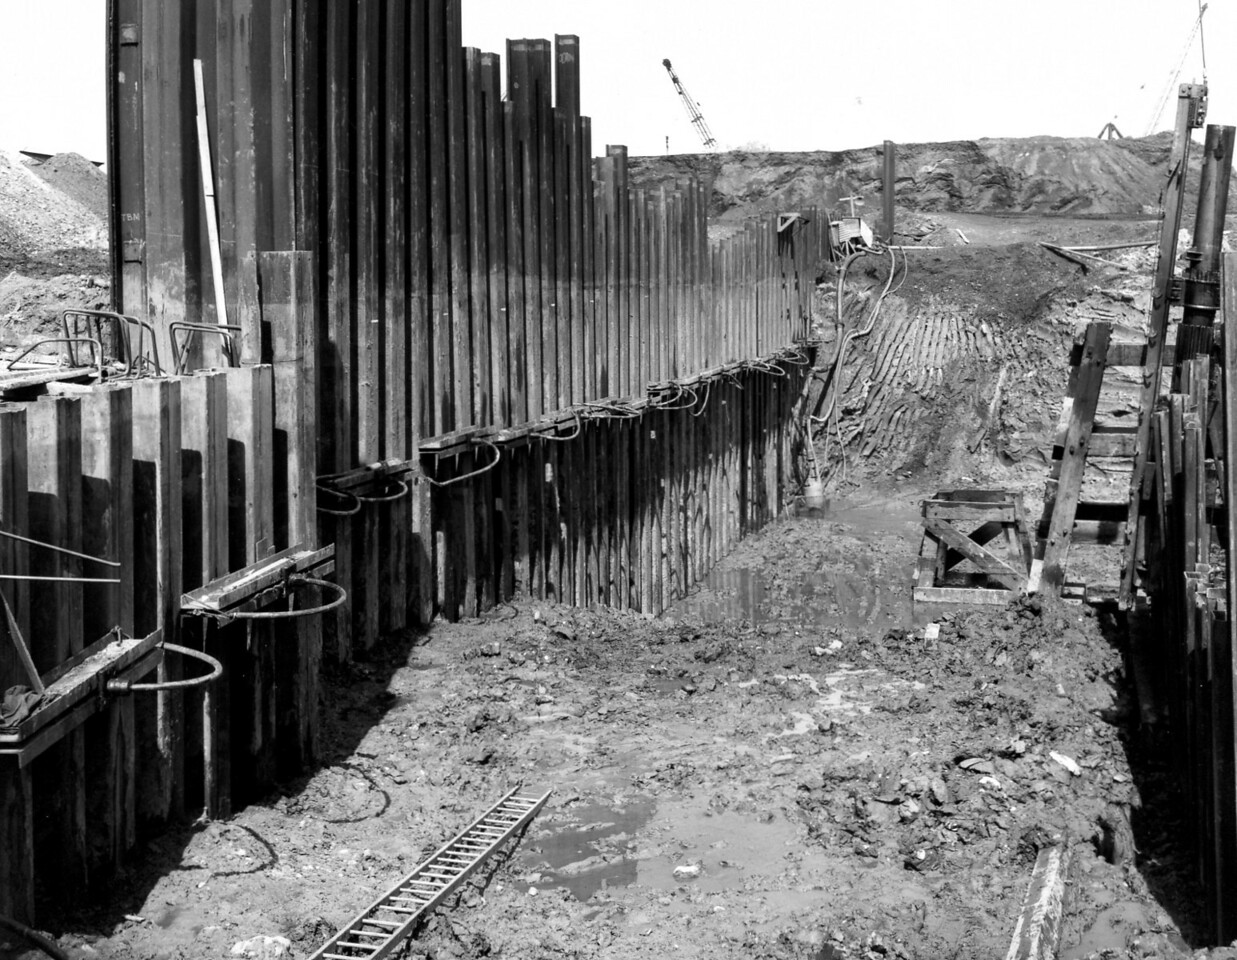 D025	Excavation & piling in progress on west side 23/5/62